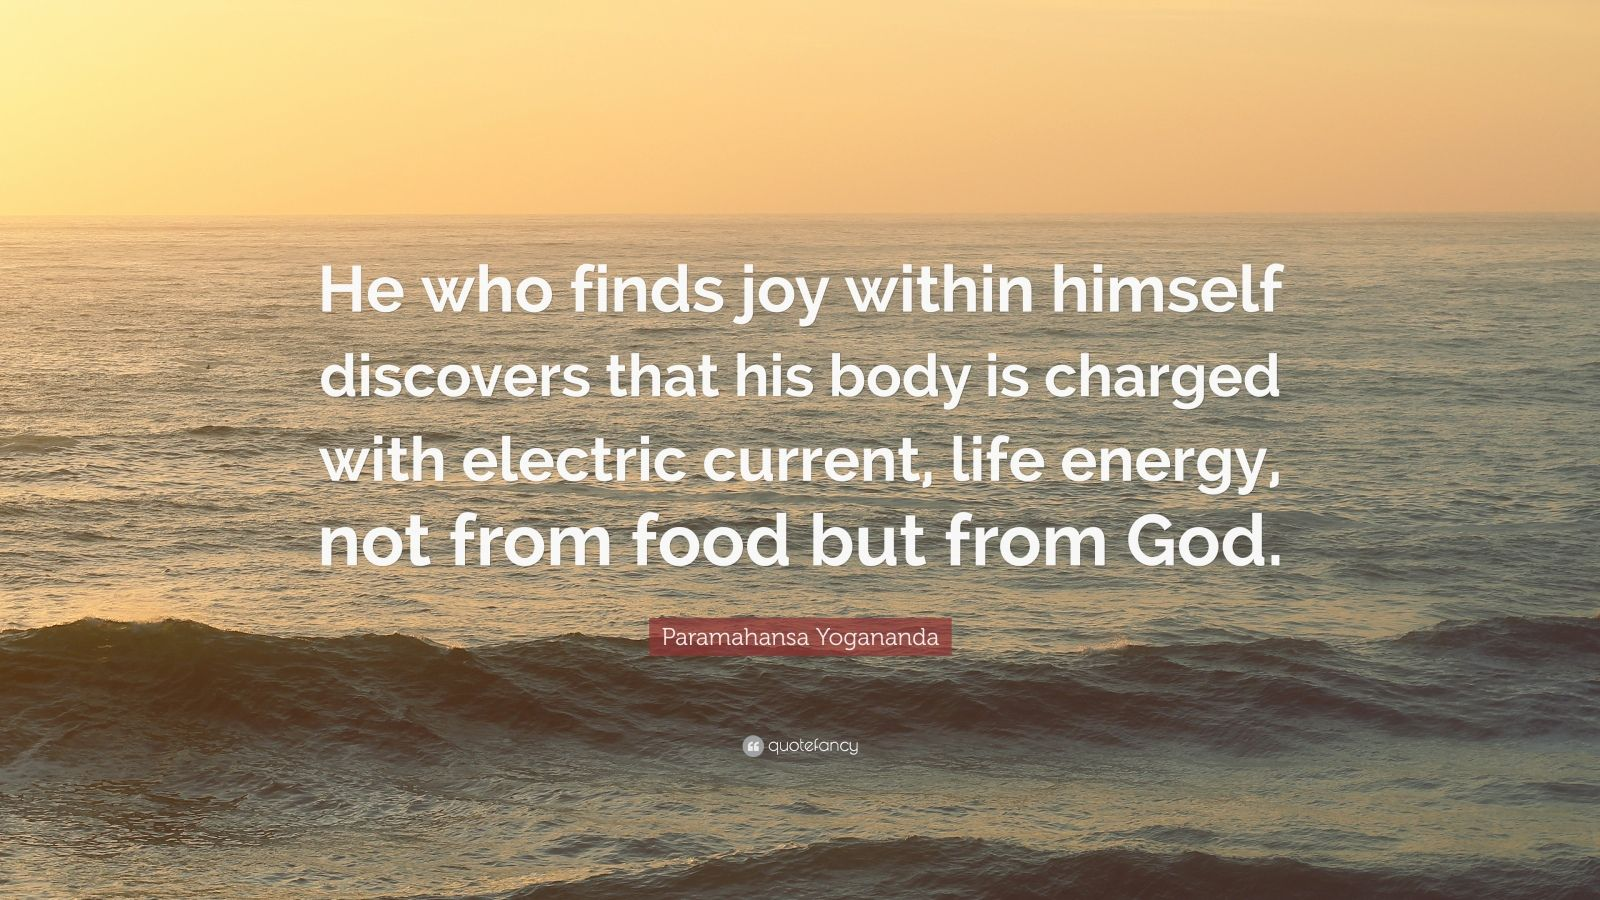 "Paramahansa Yogananda Quote: ""He who finds joy within himself discovers that his body is charged with electric current, life energy, not from food but from God."""